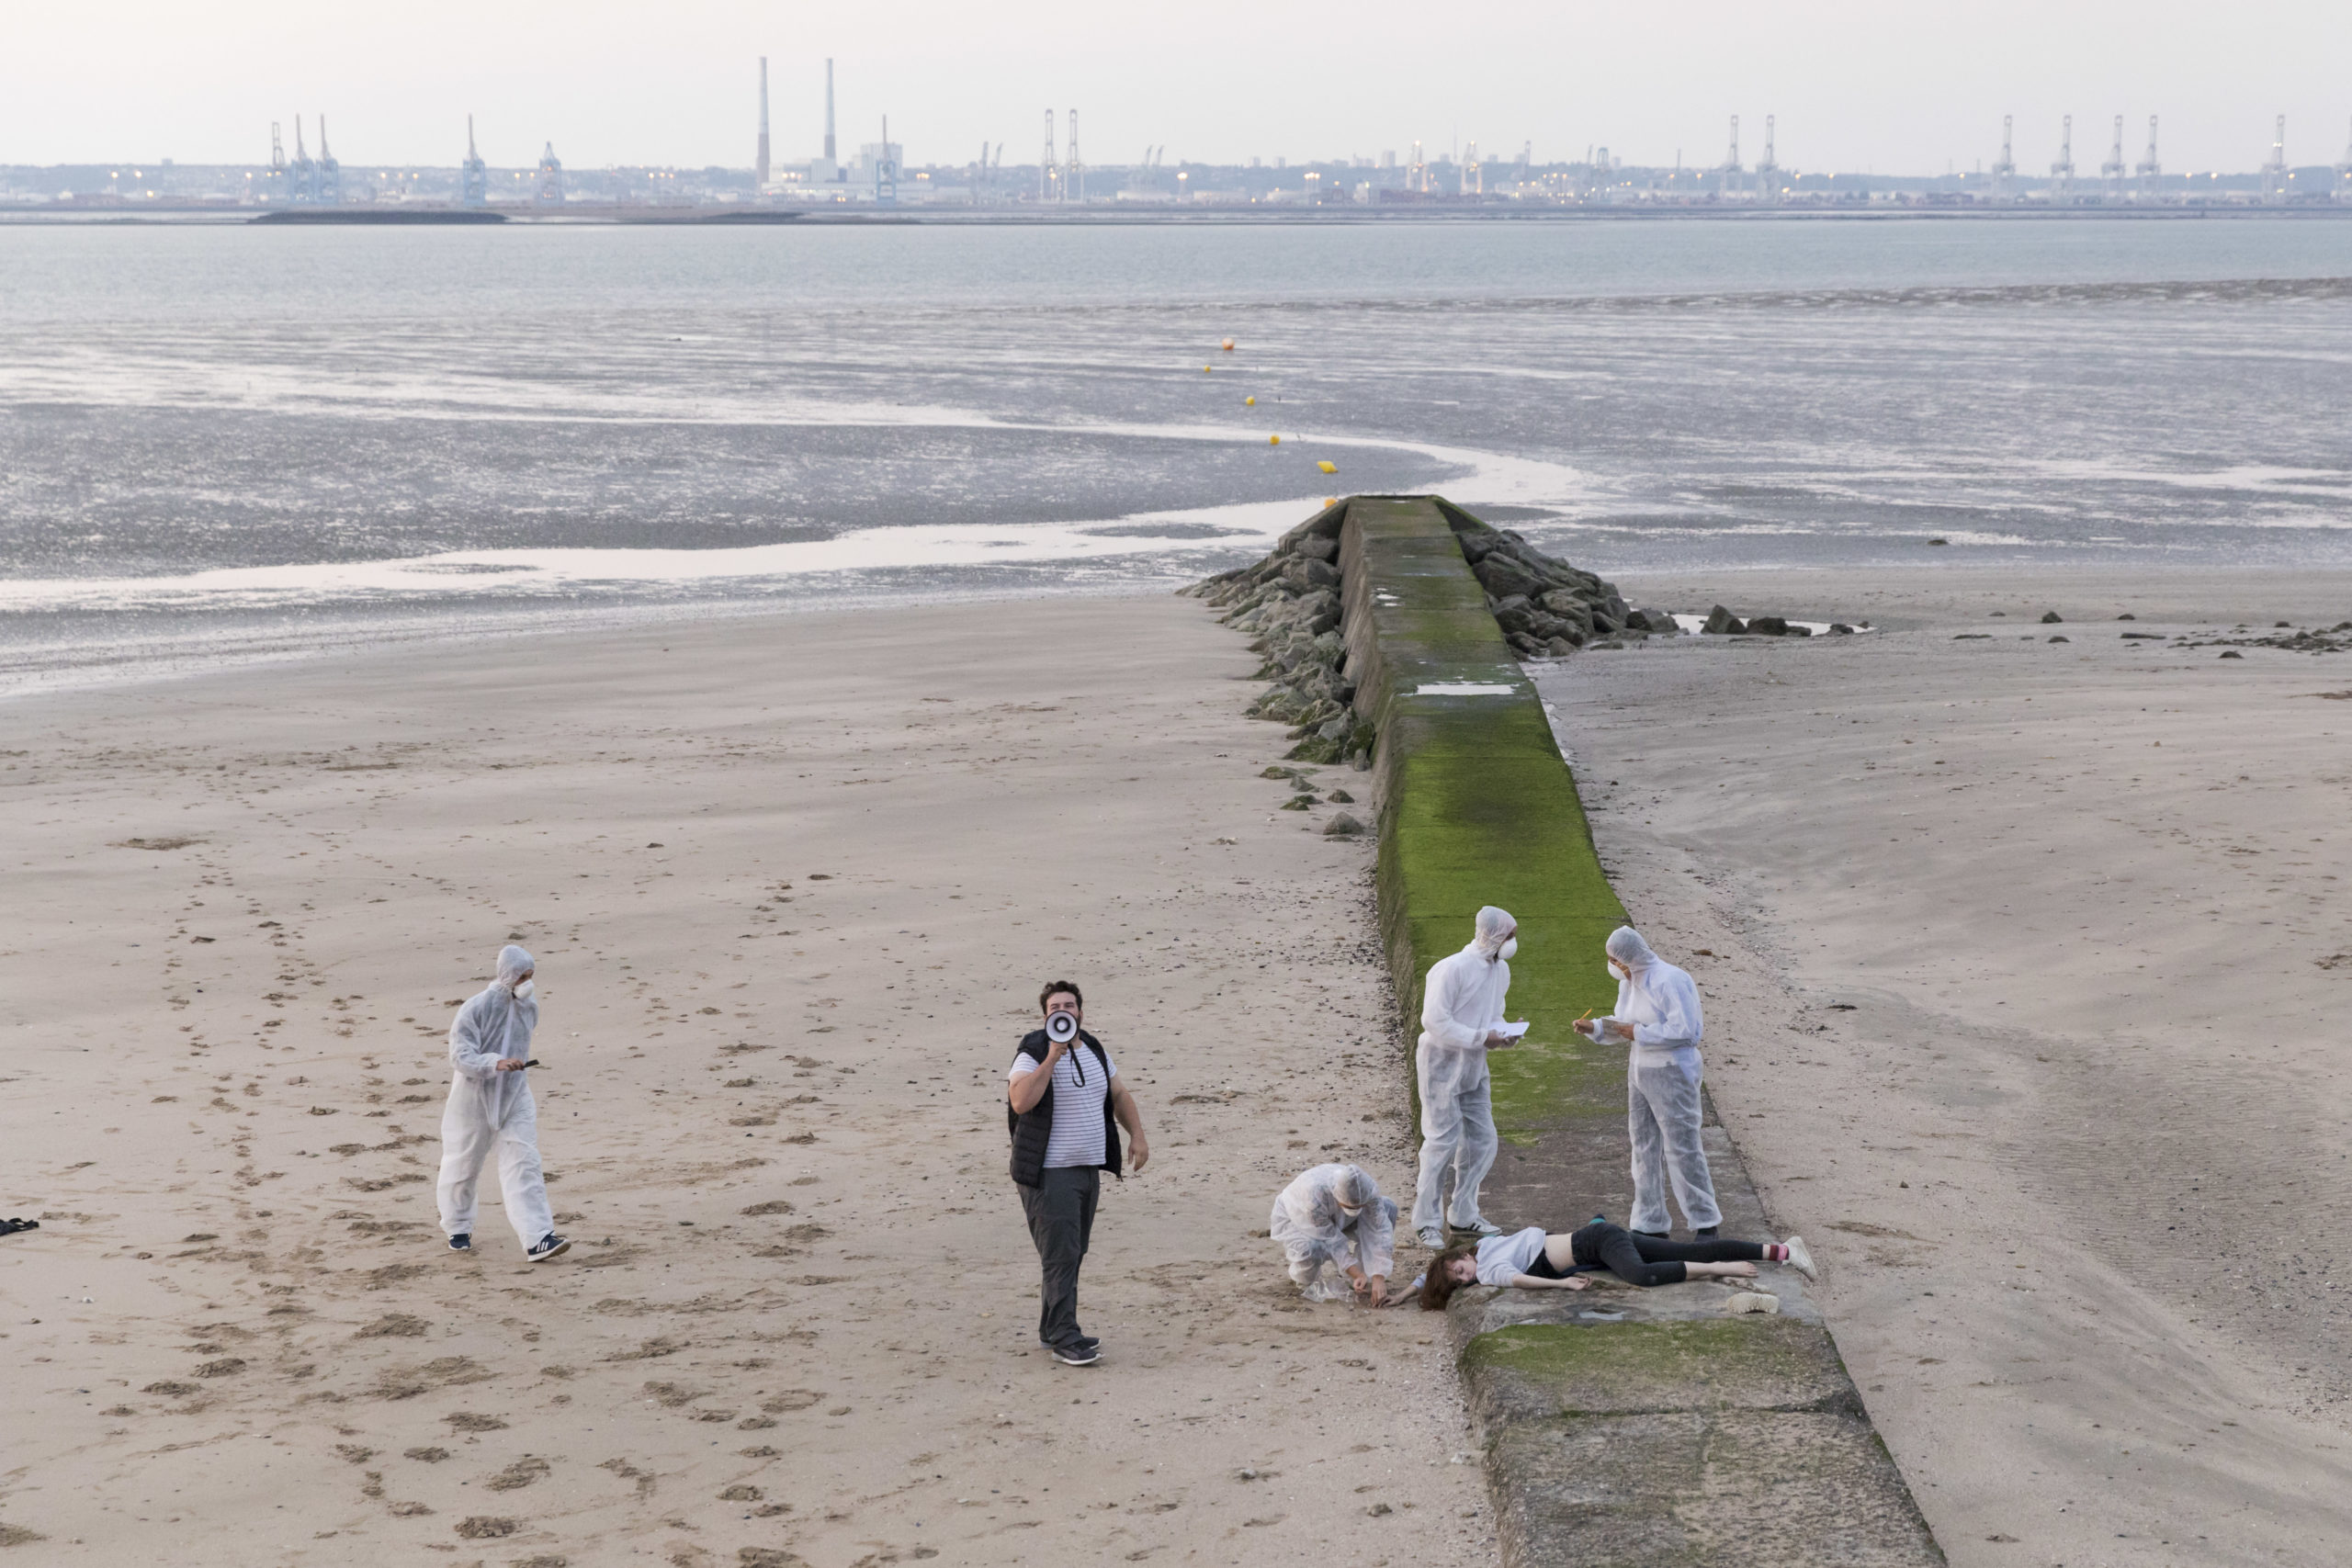 SMOG creation Claire Barrabes and Pauline Collin, directed by Pauline Collin at the Villerville Festival from August 30 to September 2, 2018. SMOG conception Claire Barrabes et Pauline Collin, mise en scene Pauline Collin au Festival de Villerville du 30 aout au 2 septembre 2018. Avec : Barbara Atlan, Laurie Barthelemy, Florent Dupuis, Quentin Gratias, Stephane Marc, Sylvere Quentin, Lison Rault, Frederic Roudier